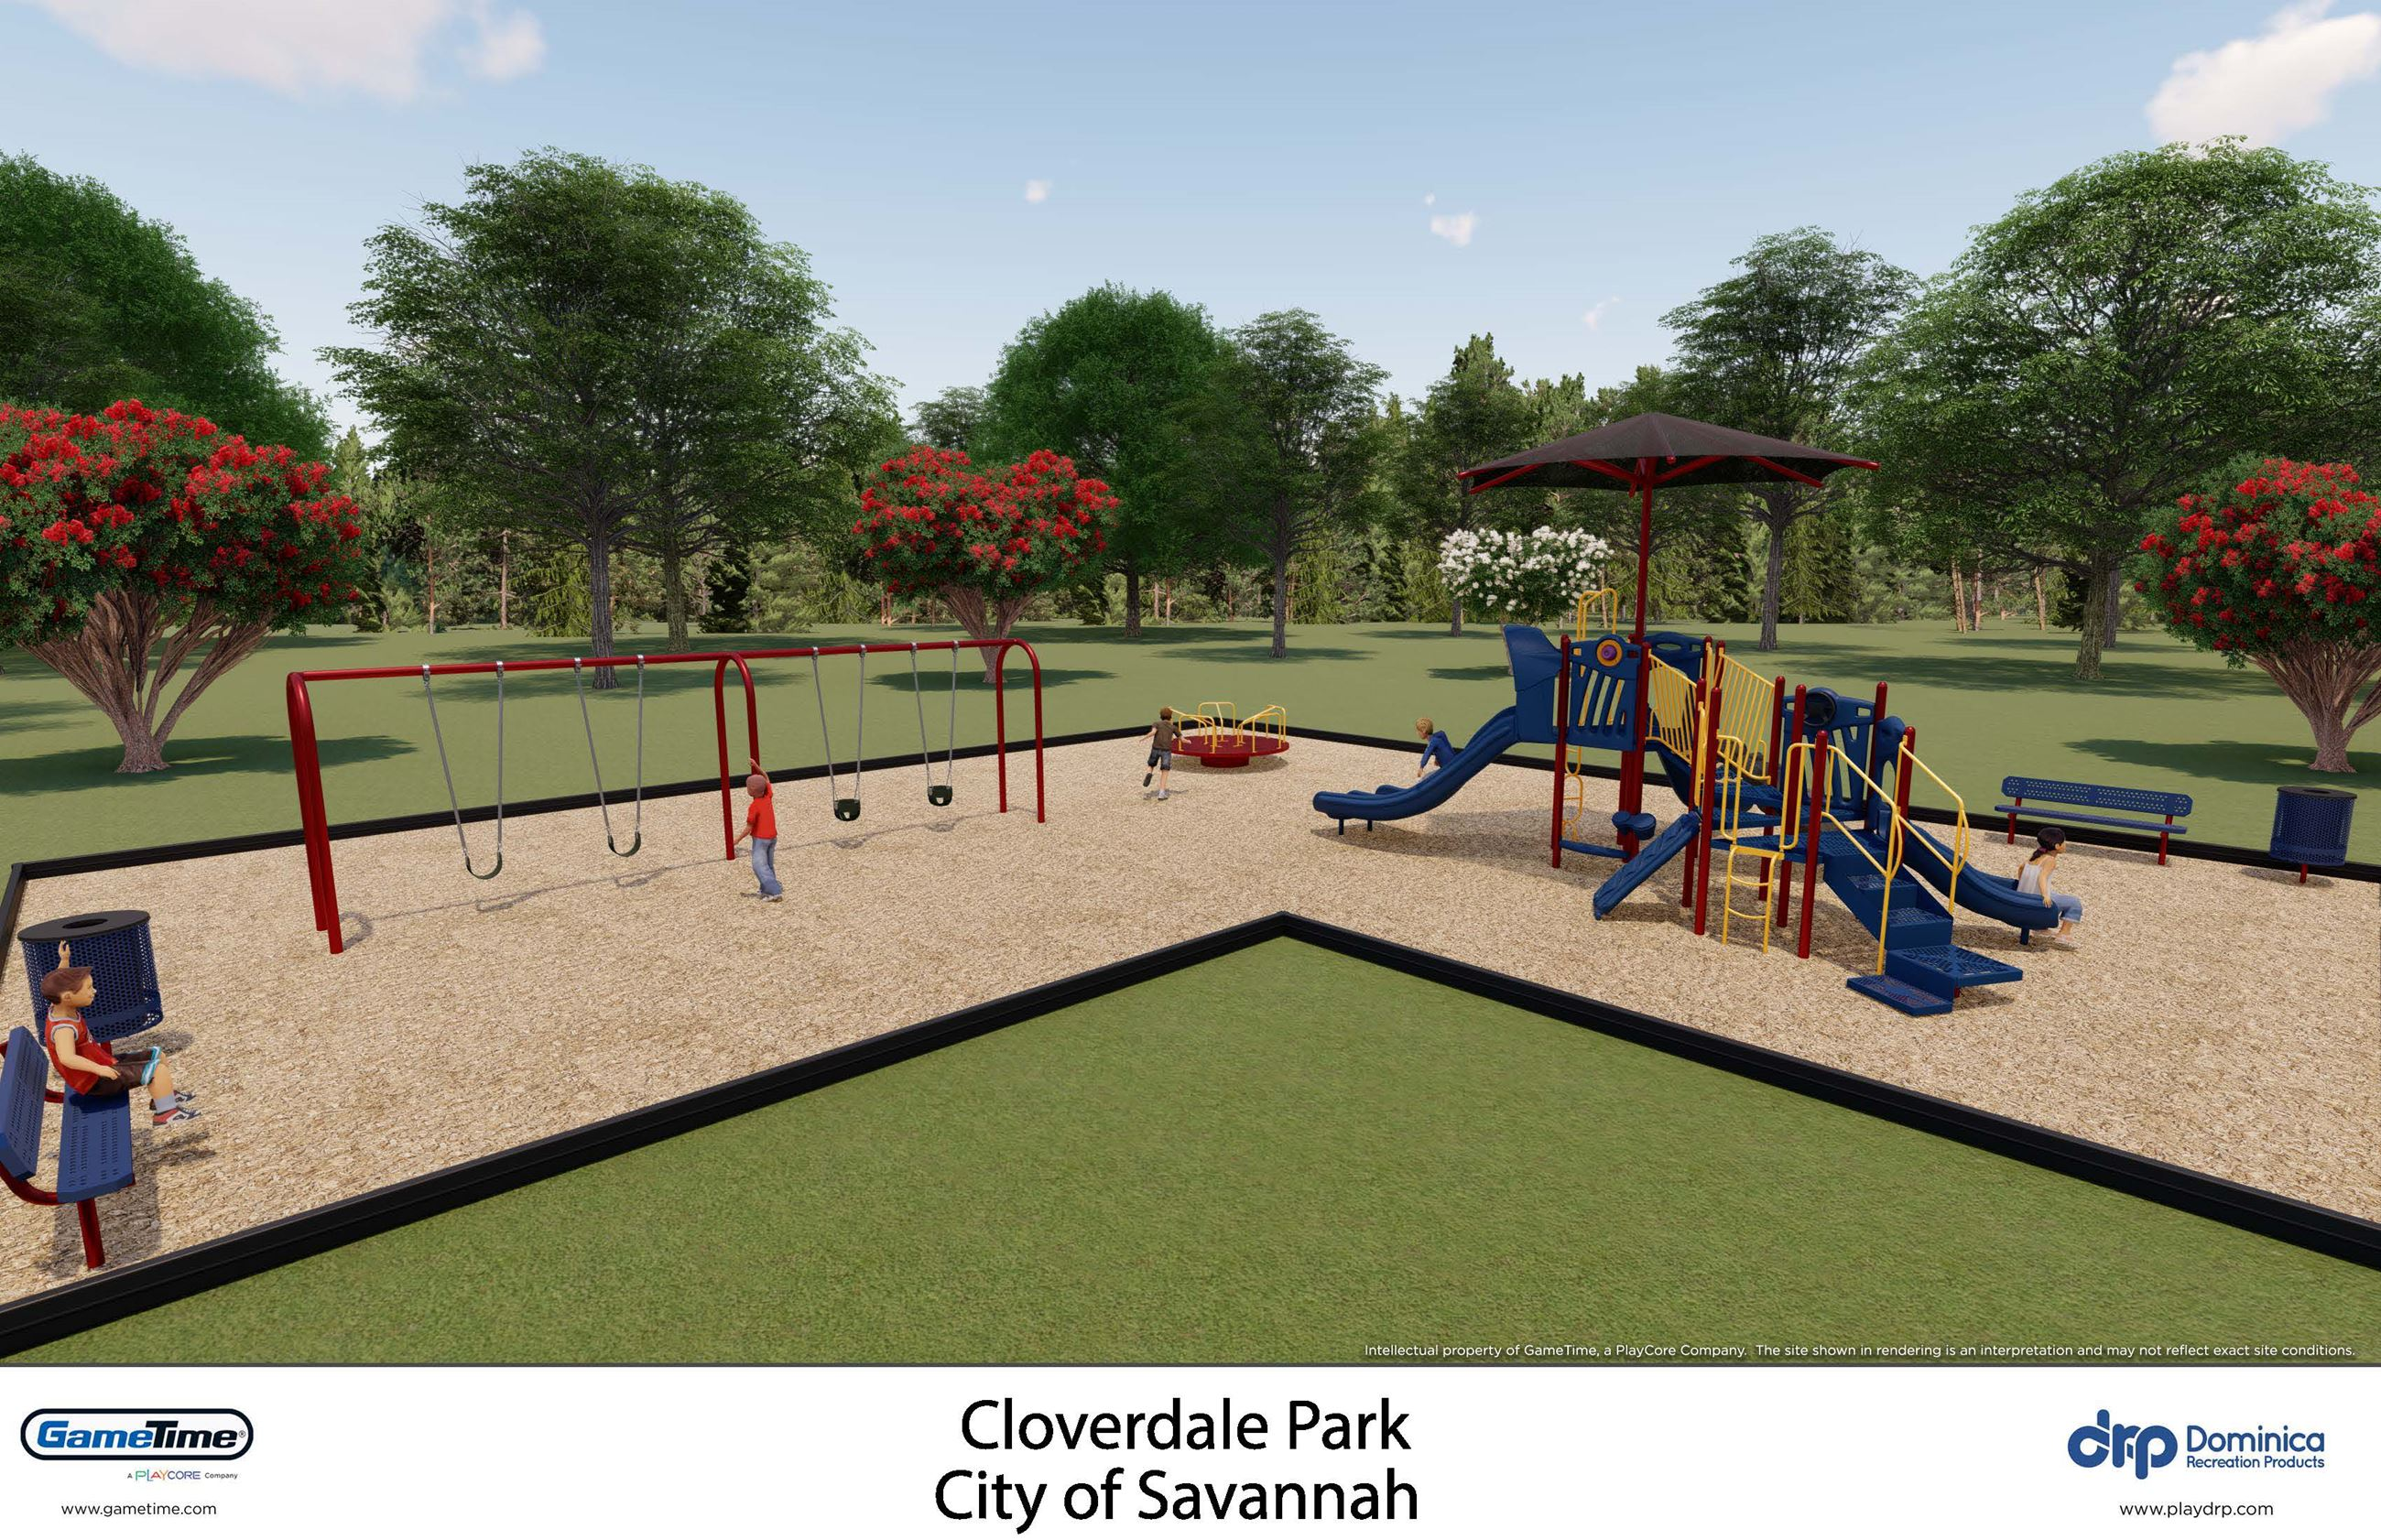 GameTime Playgrounds - Cloverdale Park_Page_2